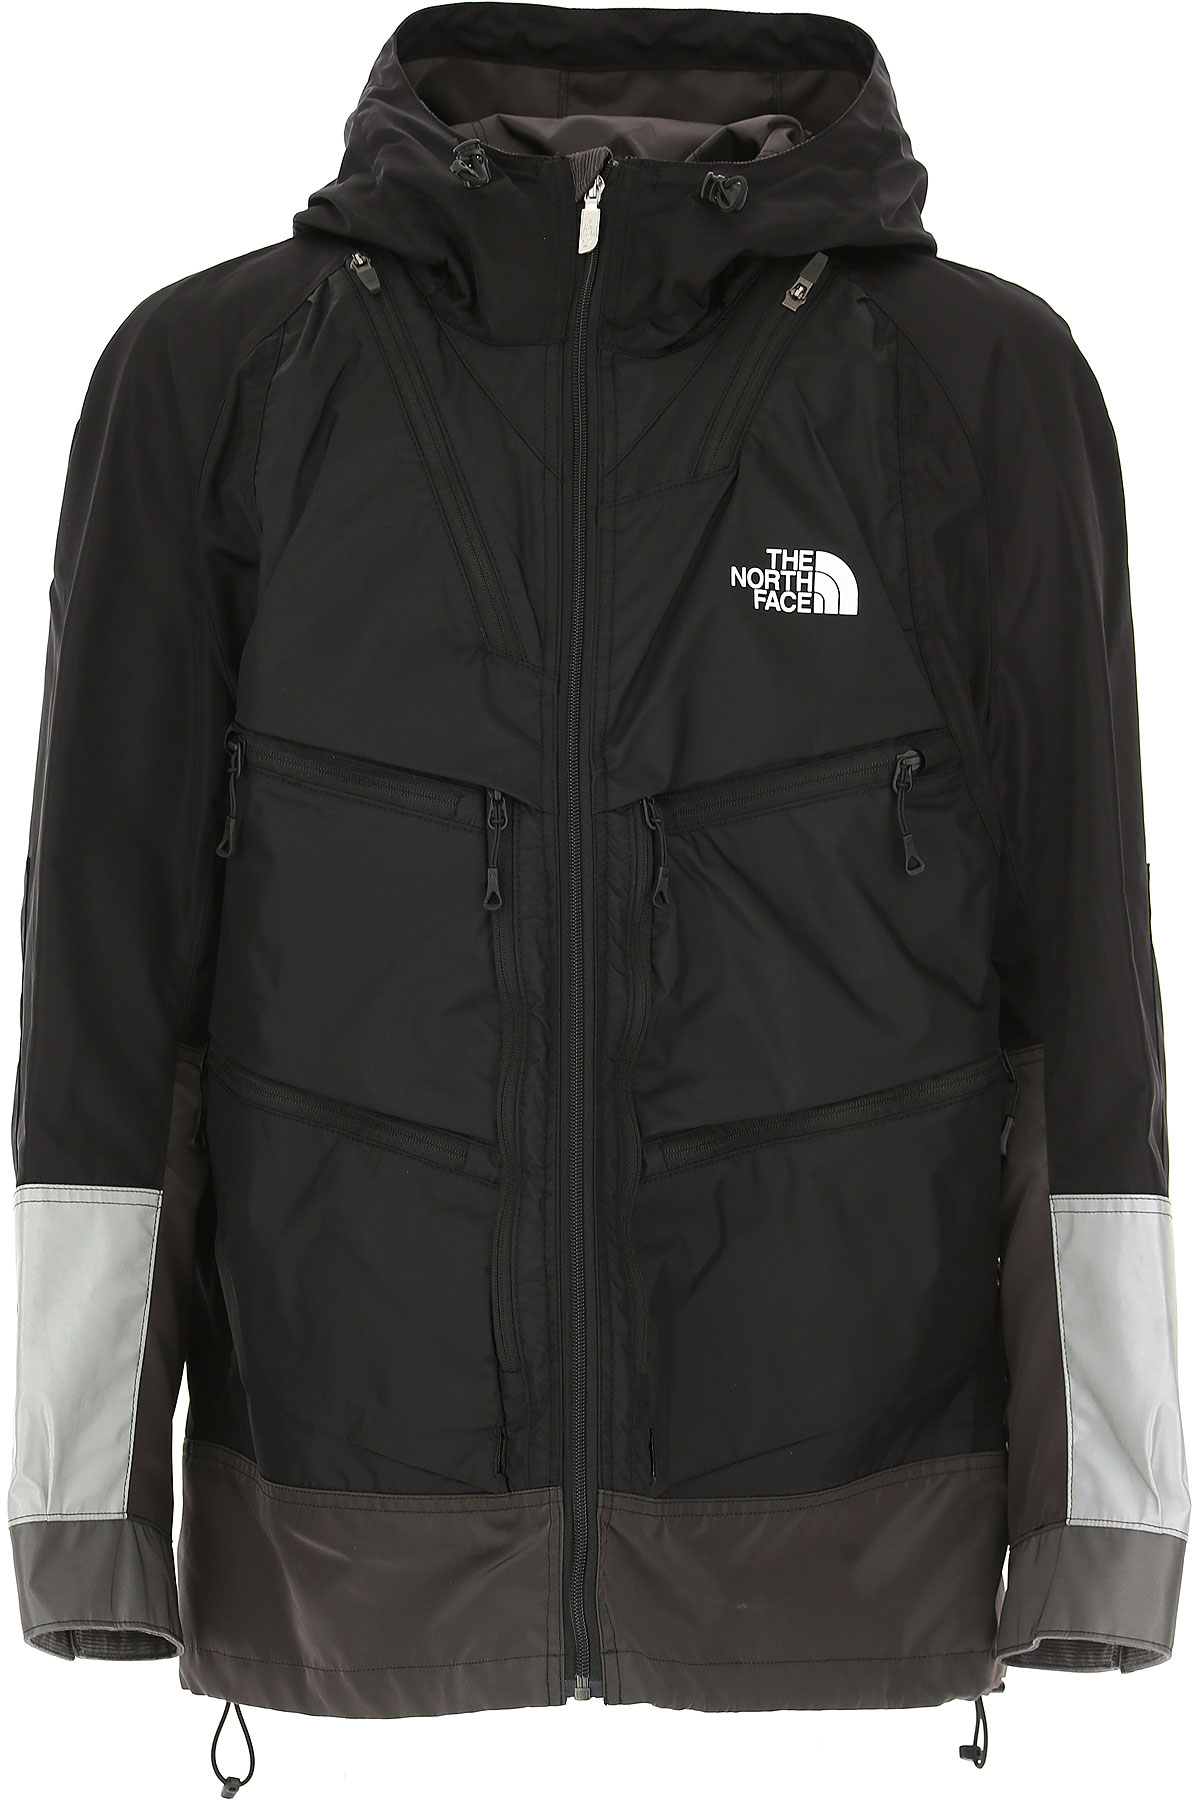 Image of The North Face Down Jacket for Men, Puffer Ski Jacket, Black, Nylon, 2017, L M S